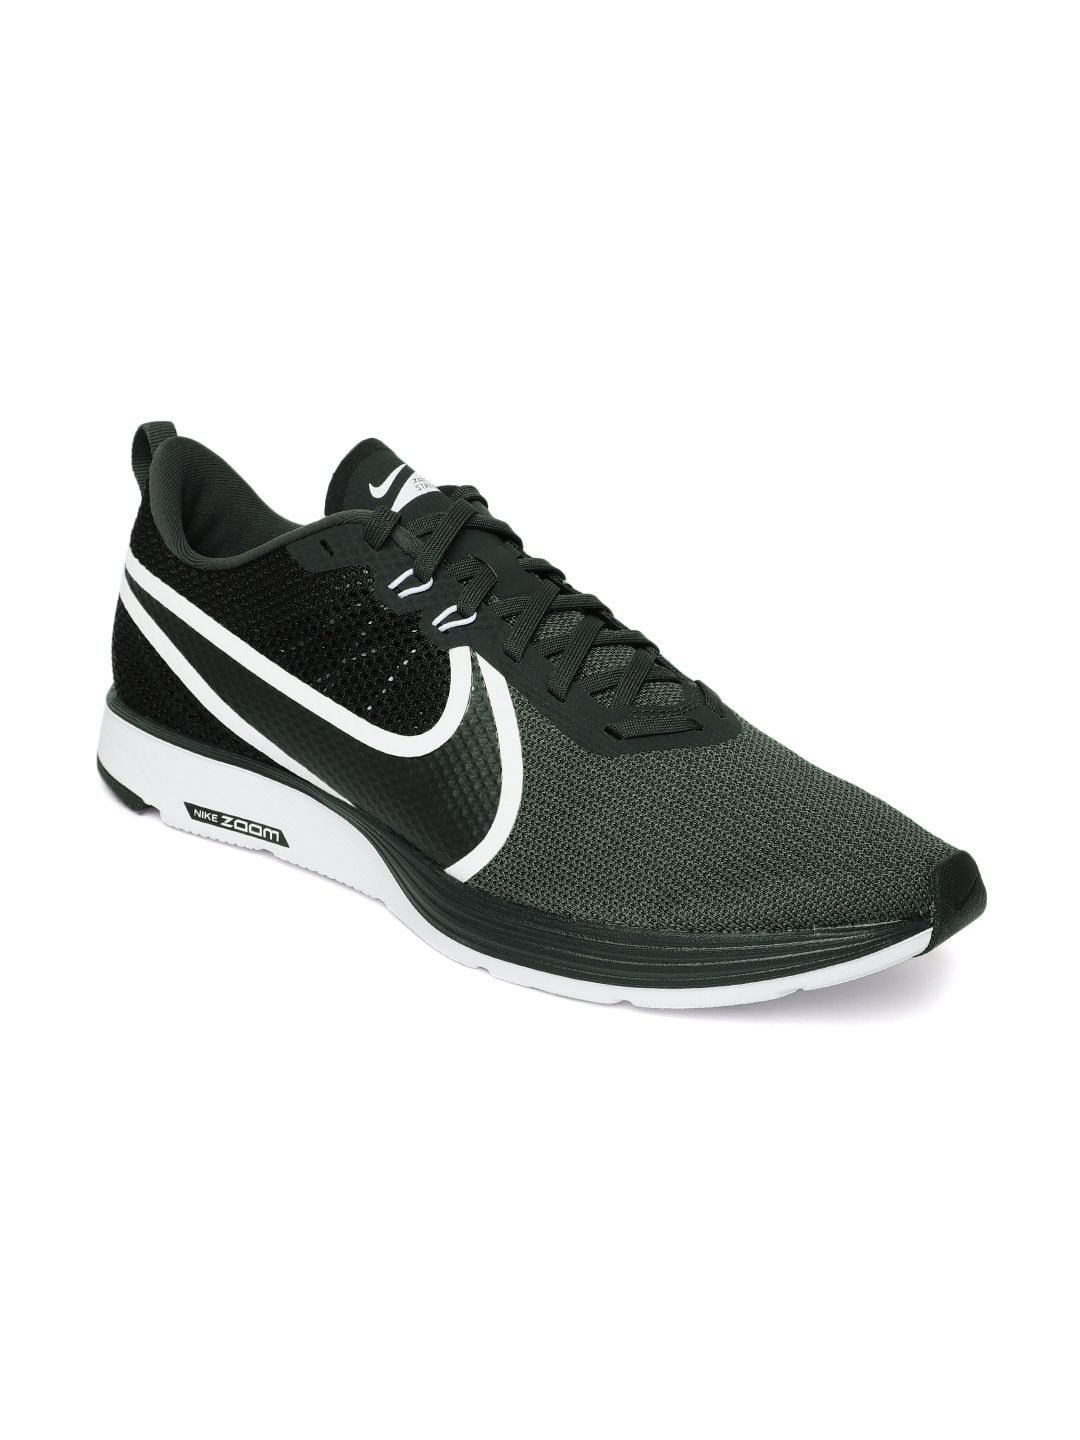 Nike Shoes for Men - Buy Men s Nike Shoes Online  4f67e5b2b